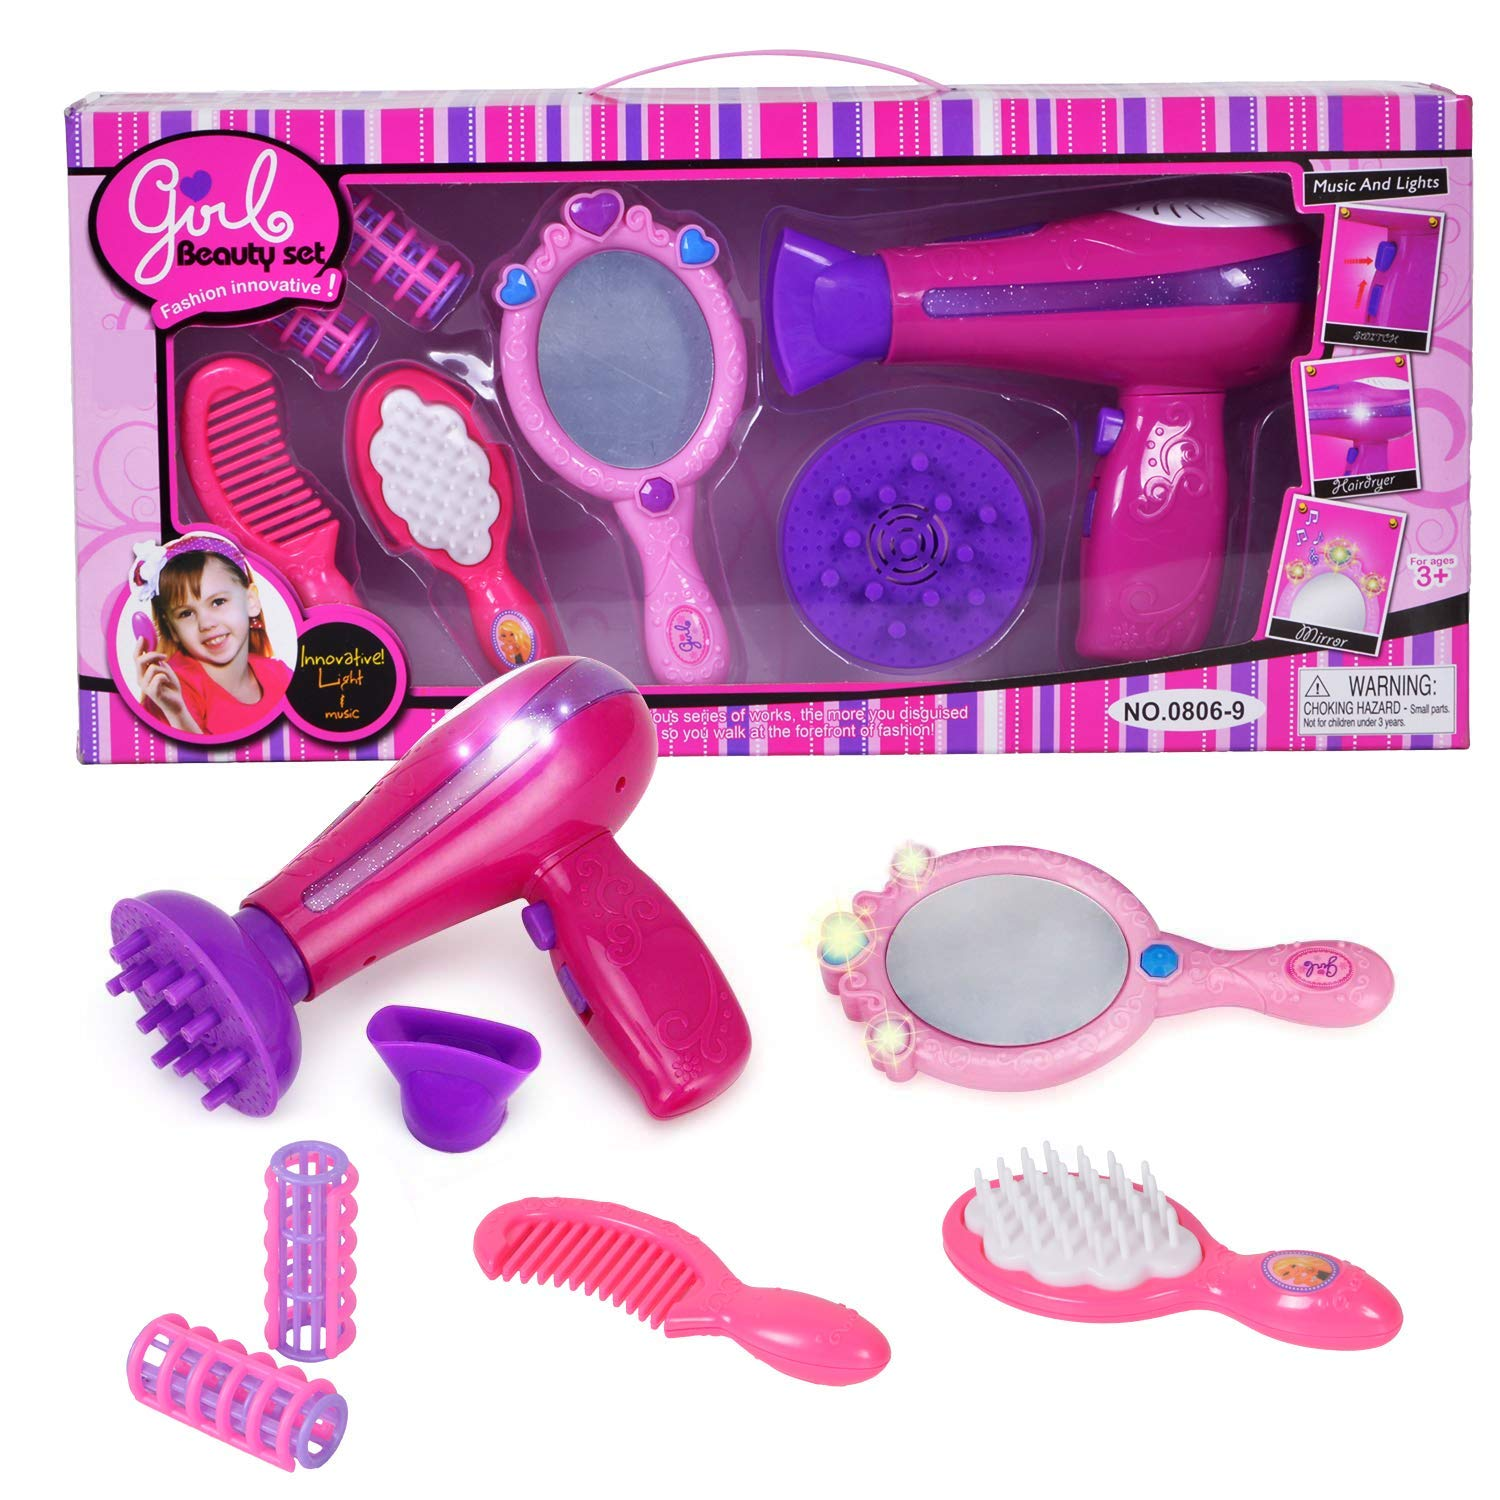 Bettina Vogue Beauty Hair Salon Fashion Pretend Play Set with Hairdryer, Mirror, Styling Accessories by Bettina